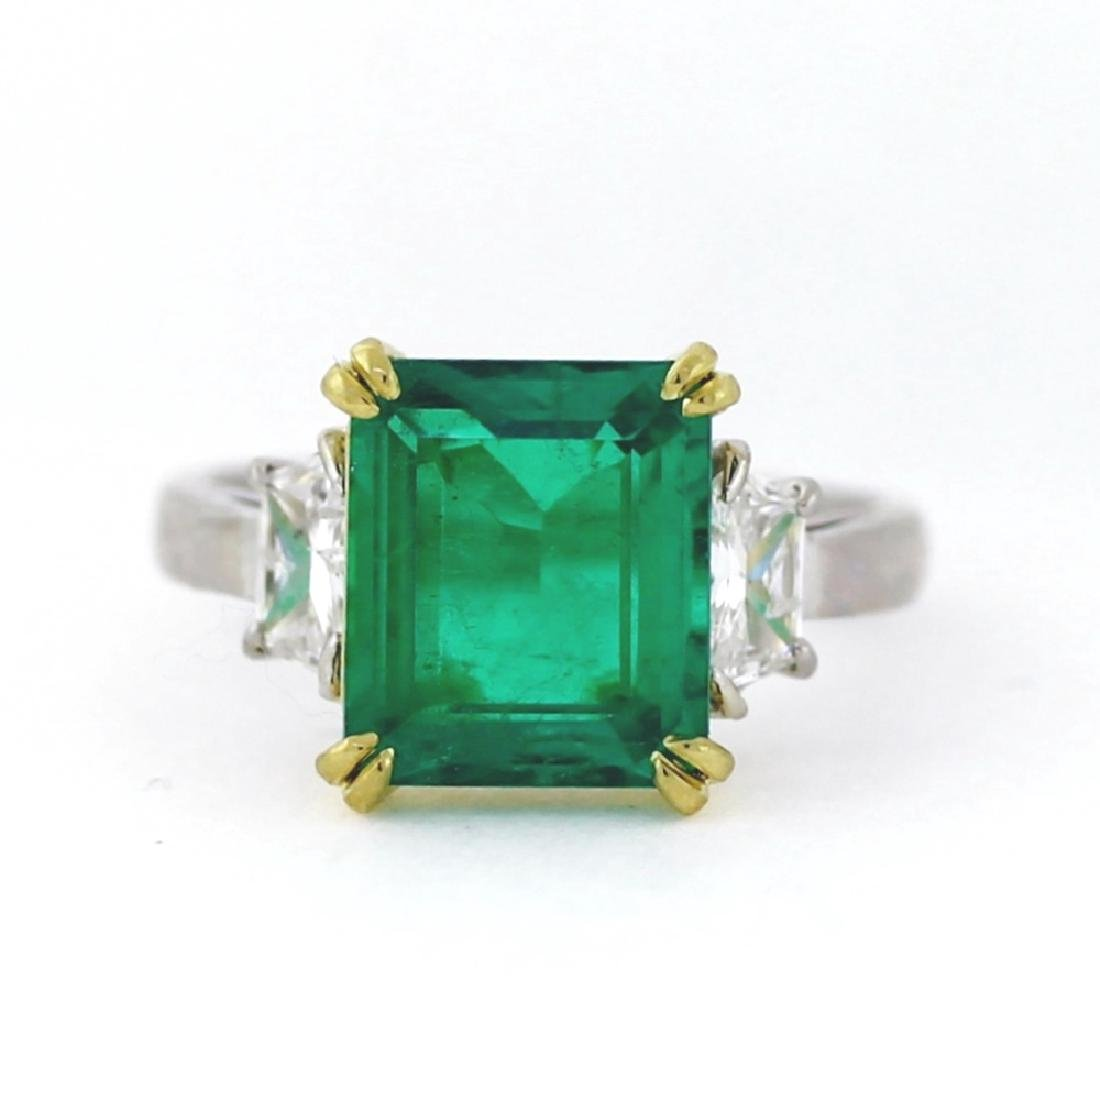 3.96ct Emerald, 0.65ctw Diam., Plat. & 18K Ring